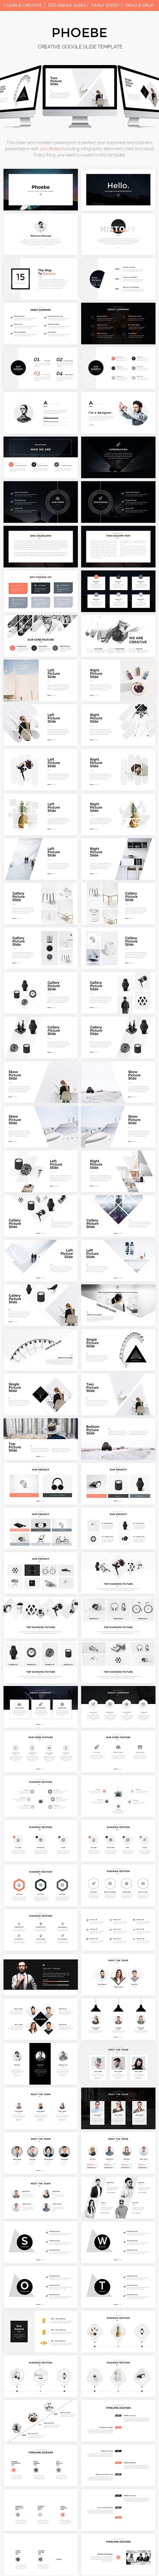 Phoebe - Creative Powerpoint Template 20240061